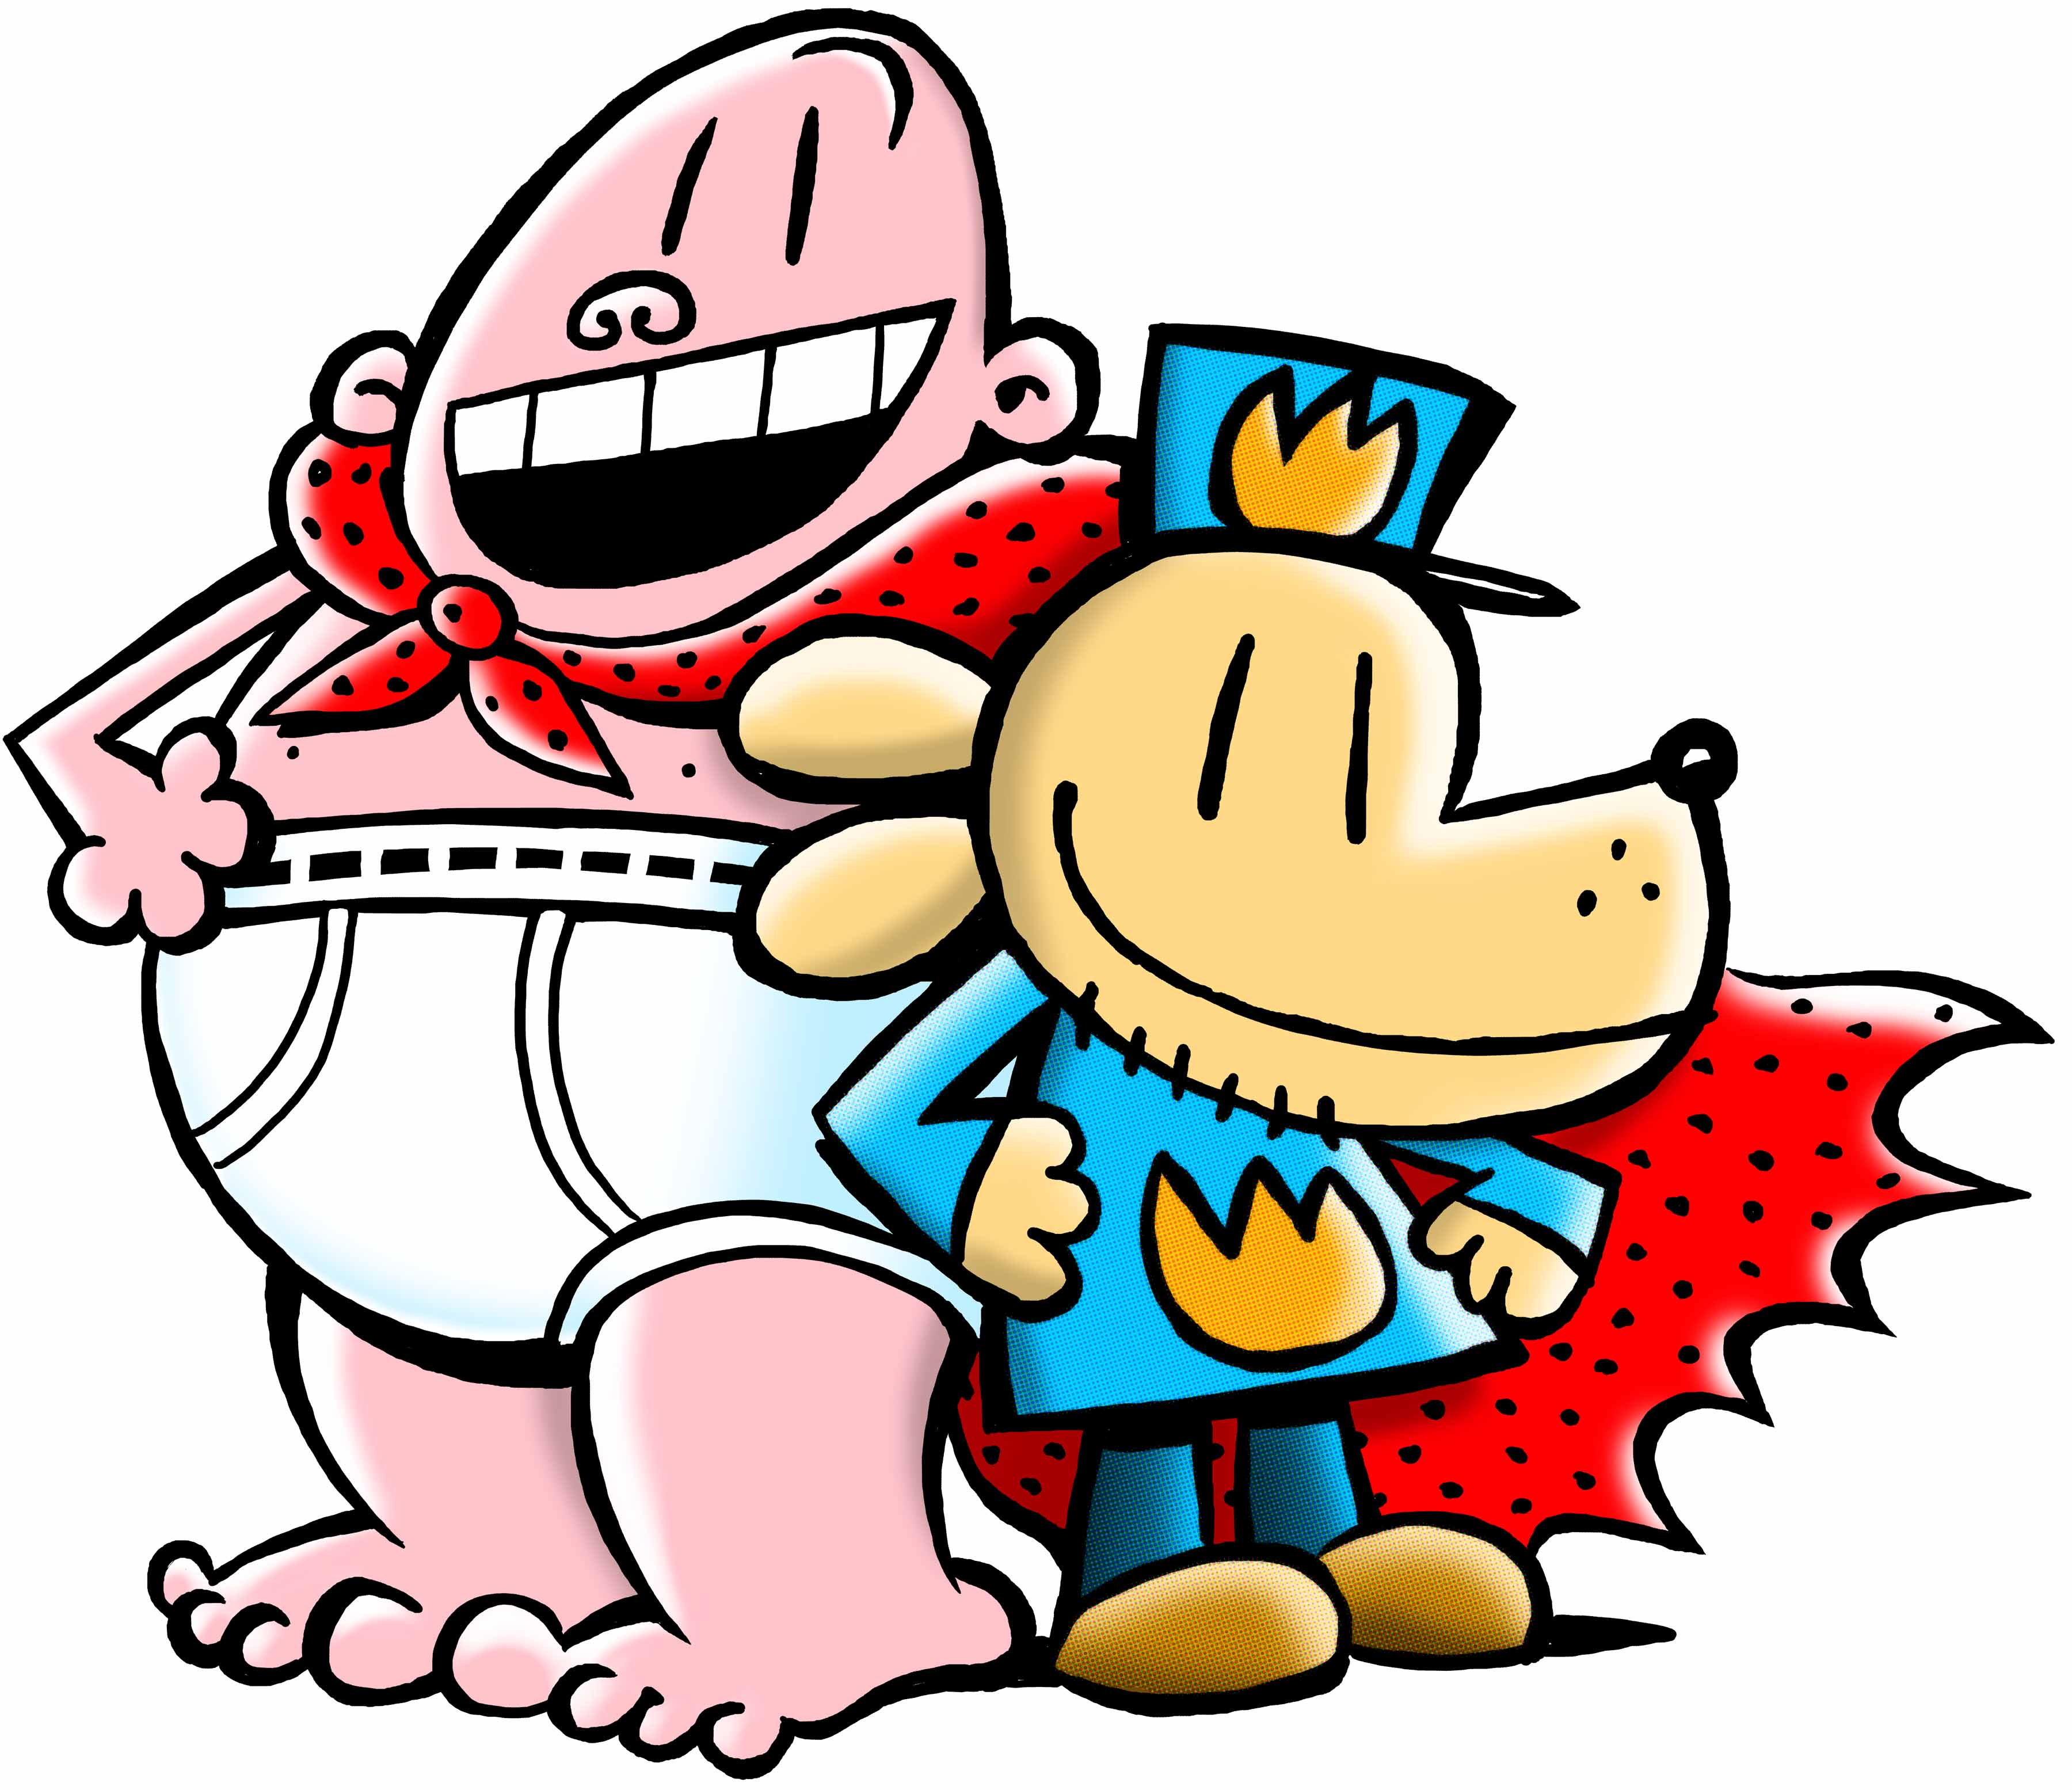 Captain Underpants and Dog Man